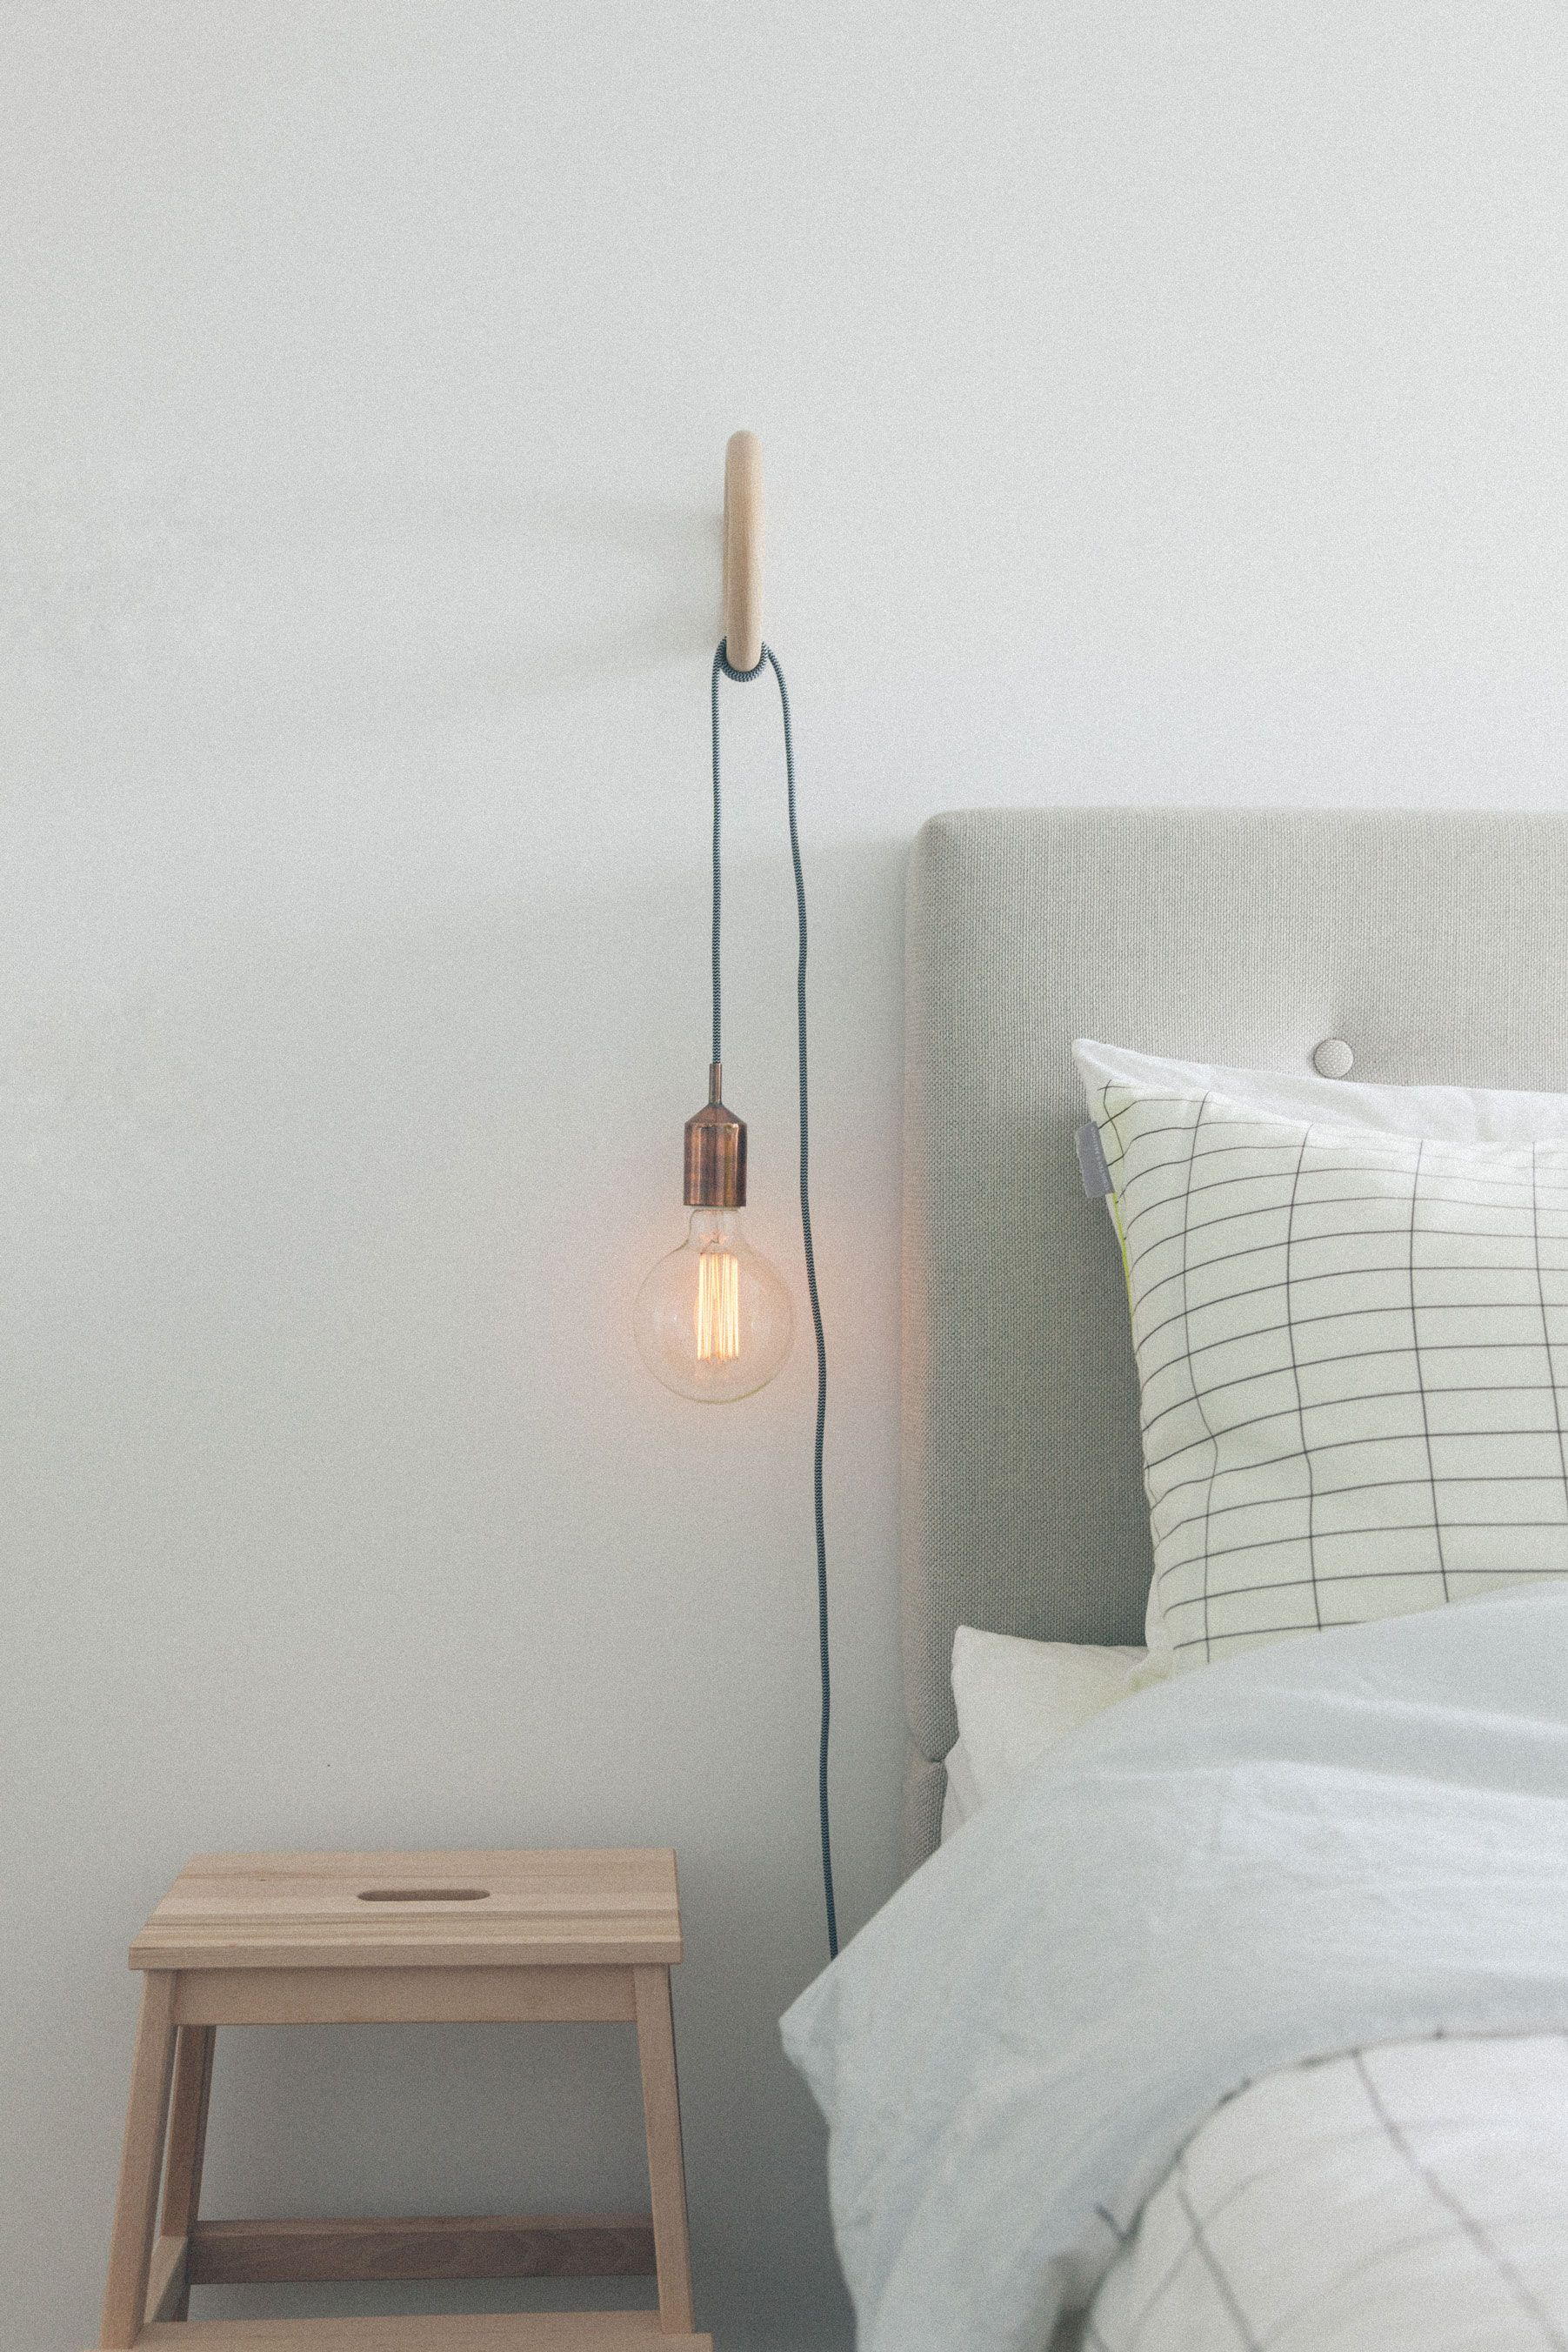 Light Bedroom Hanging Lights Bulbs Lighting Ideas Bulb